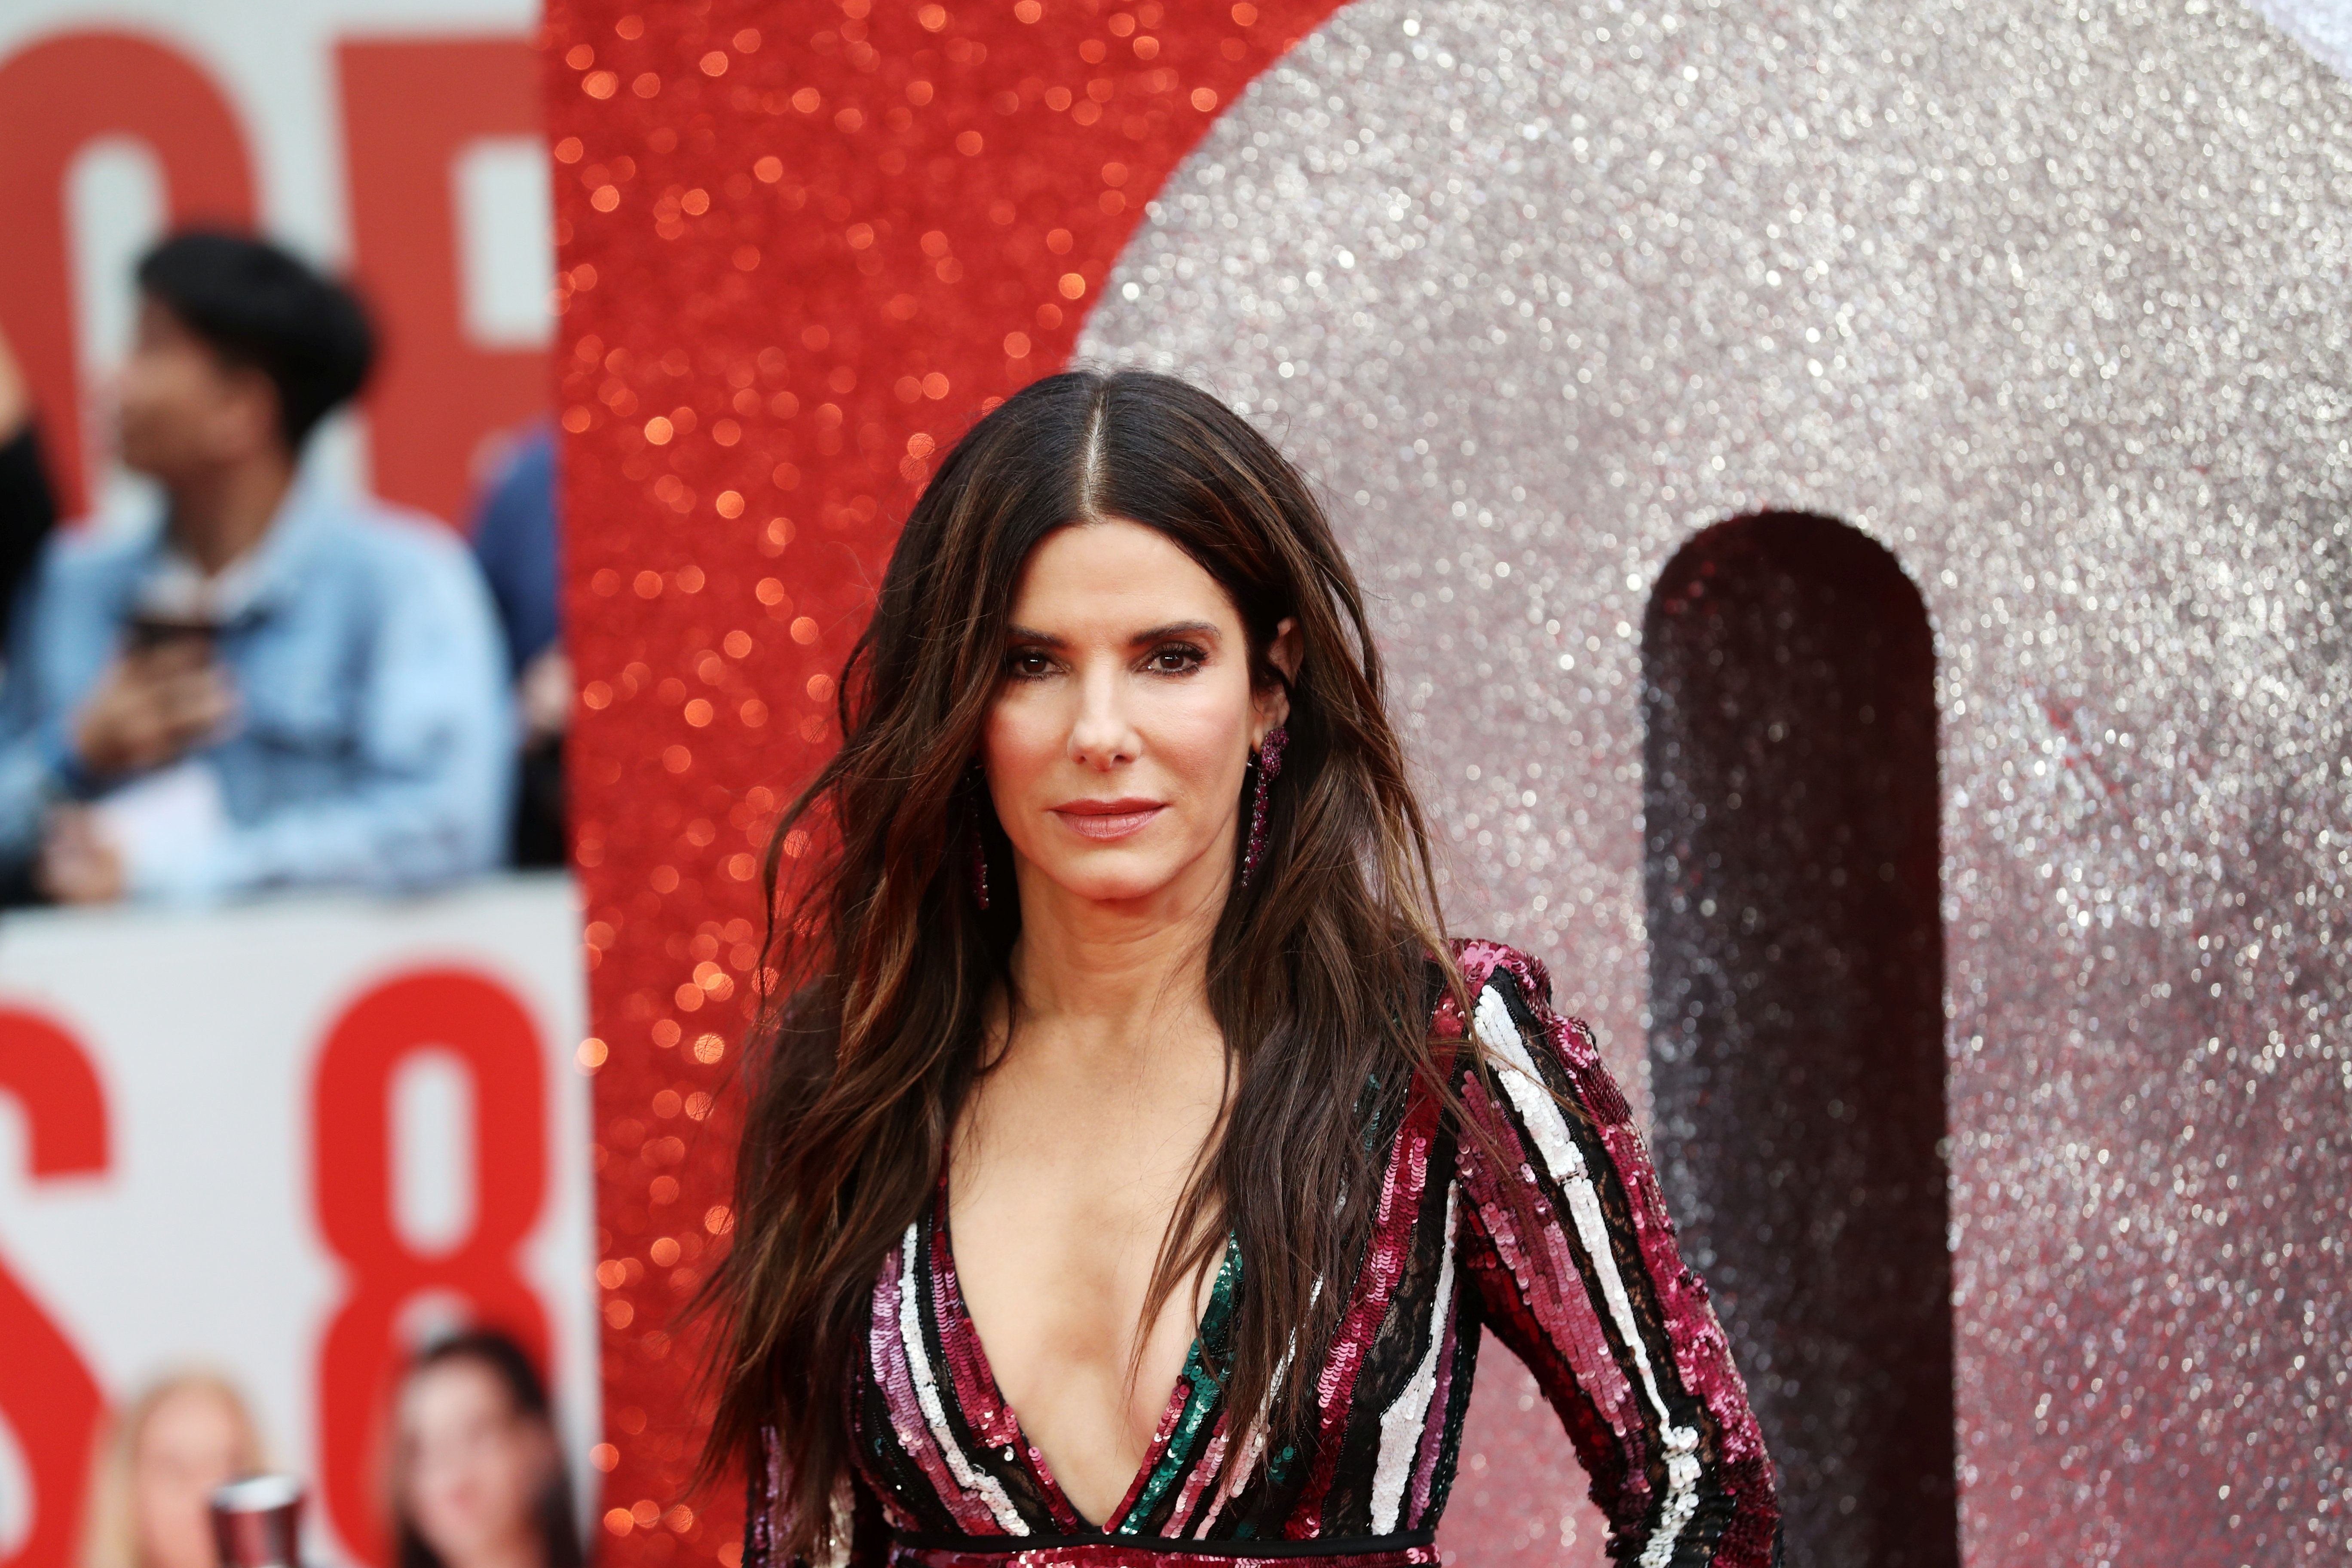 Cast member Sandra Bullock poses for pictures on the red carpet for the European premiere of Ocean's 8 in London, Britain June 13, 2018. REUTERS/Simon Dawson